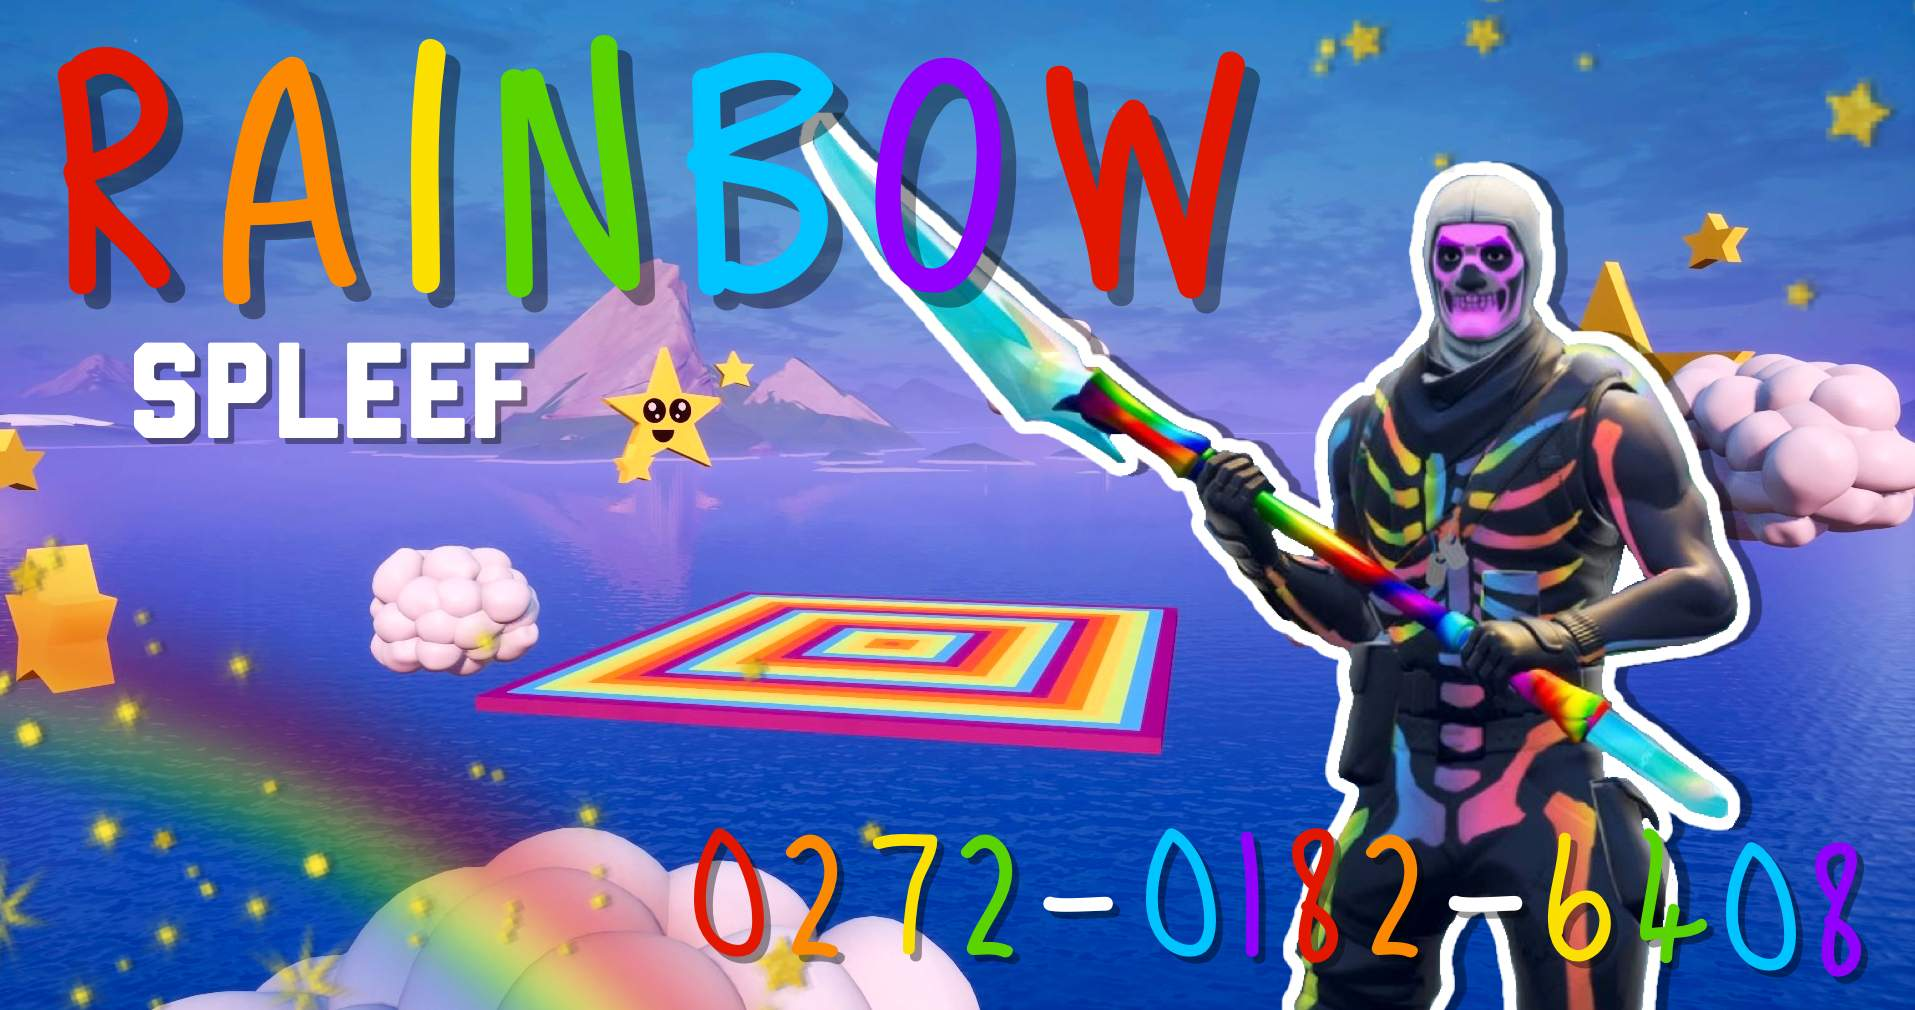 RAINBOW SPLEEF